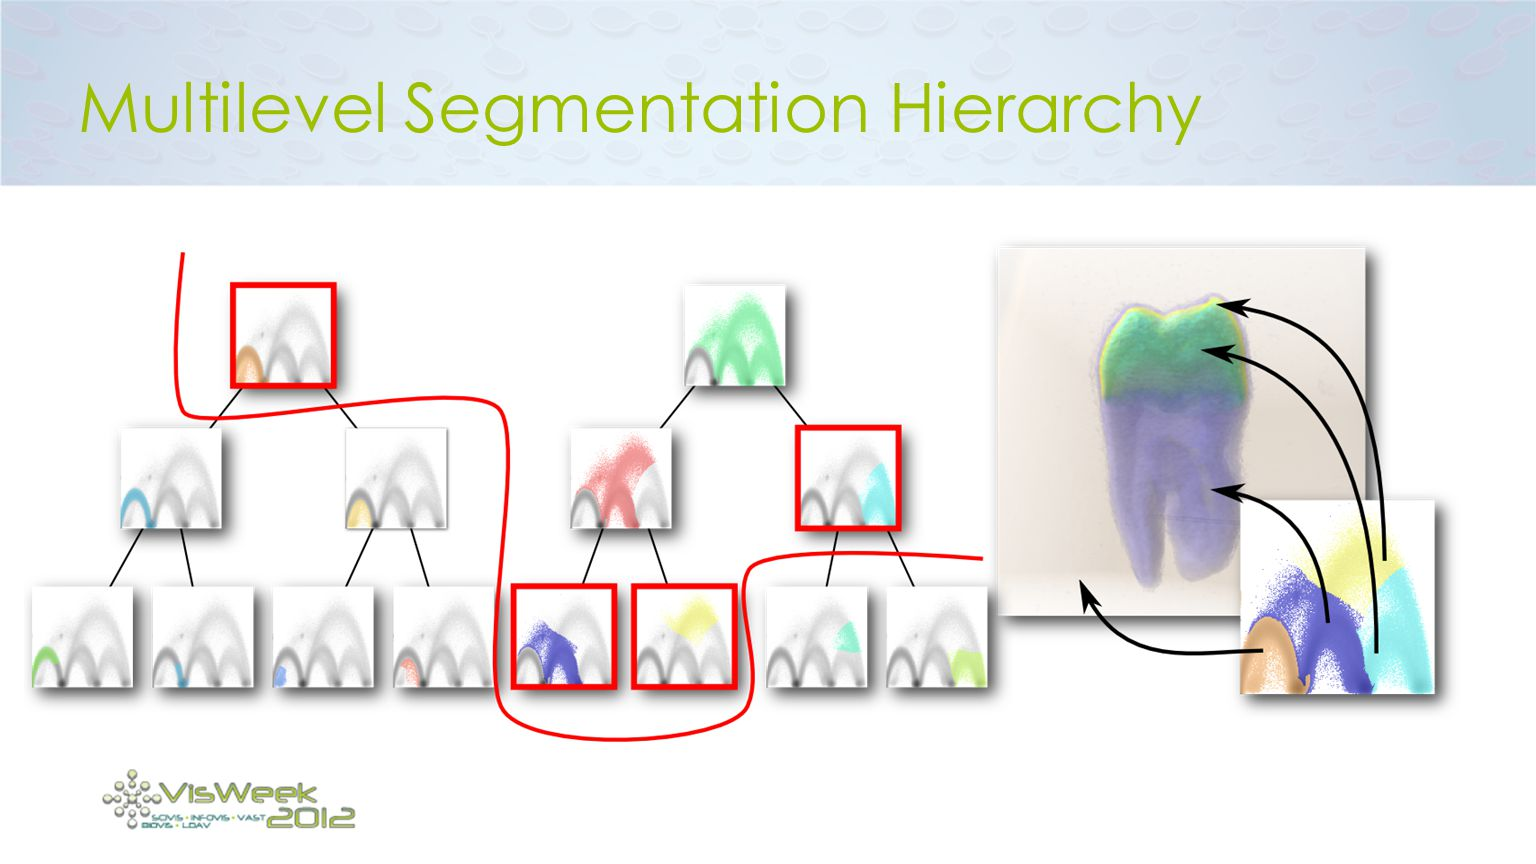 Multilevel Segmentation Hierarchy